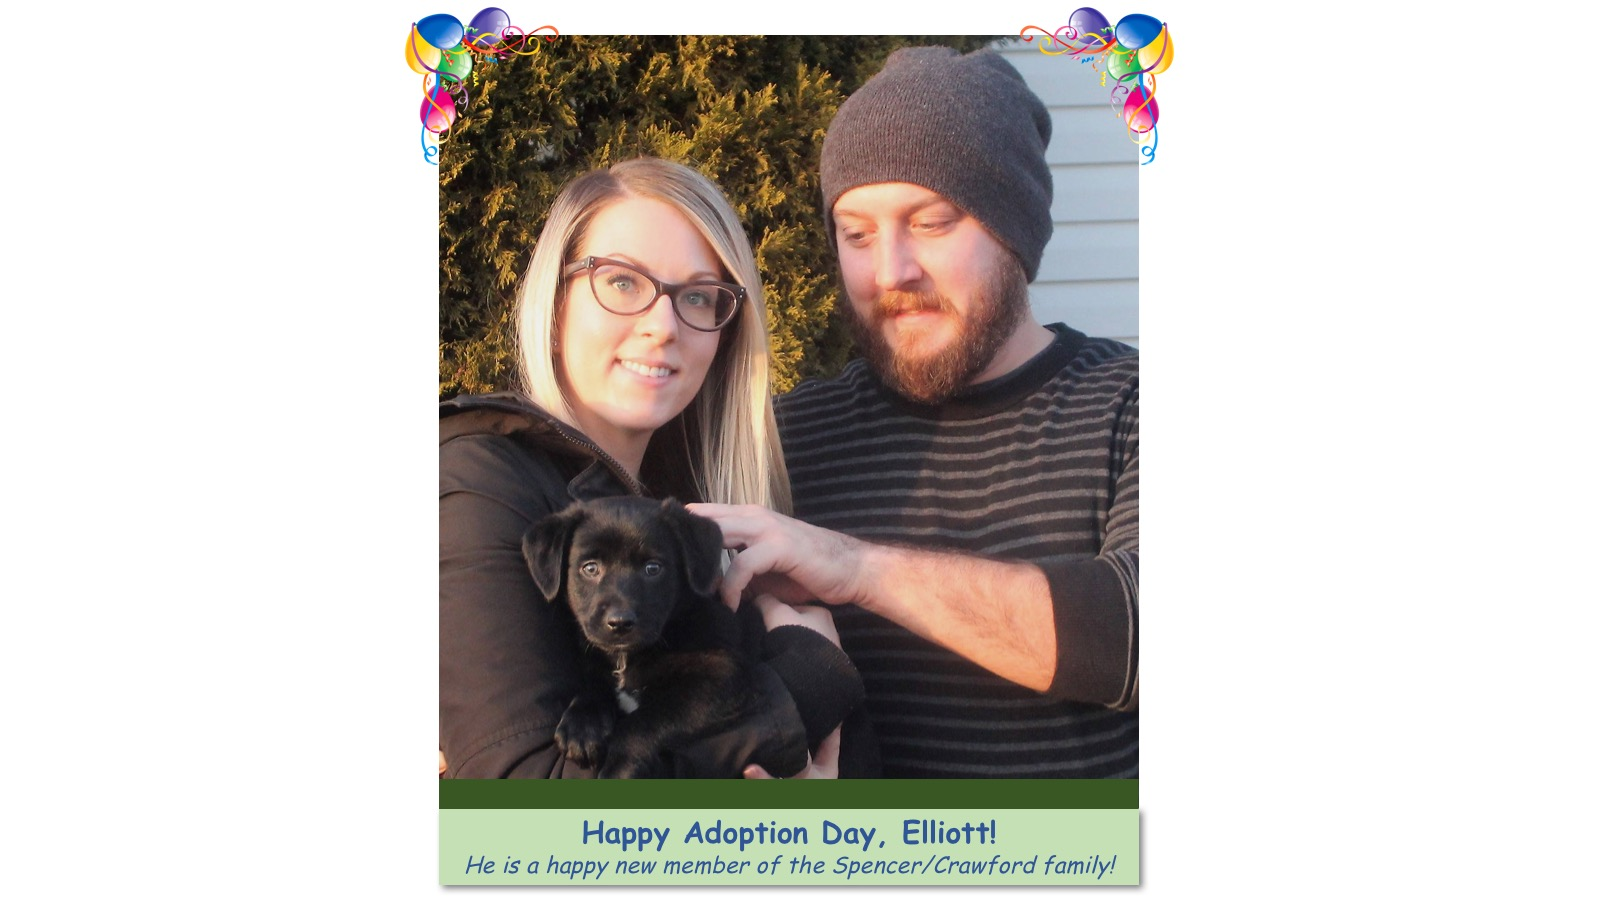 Elliott_Adoption_photo.jpg